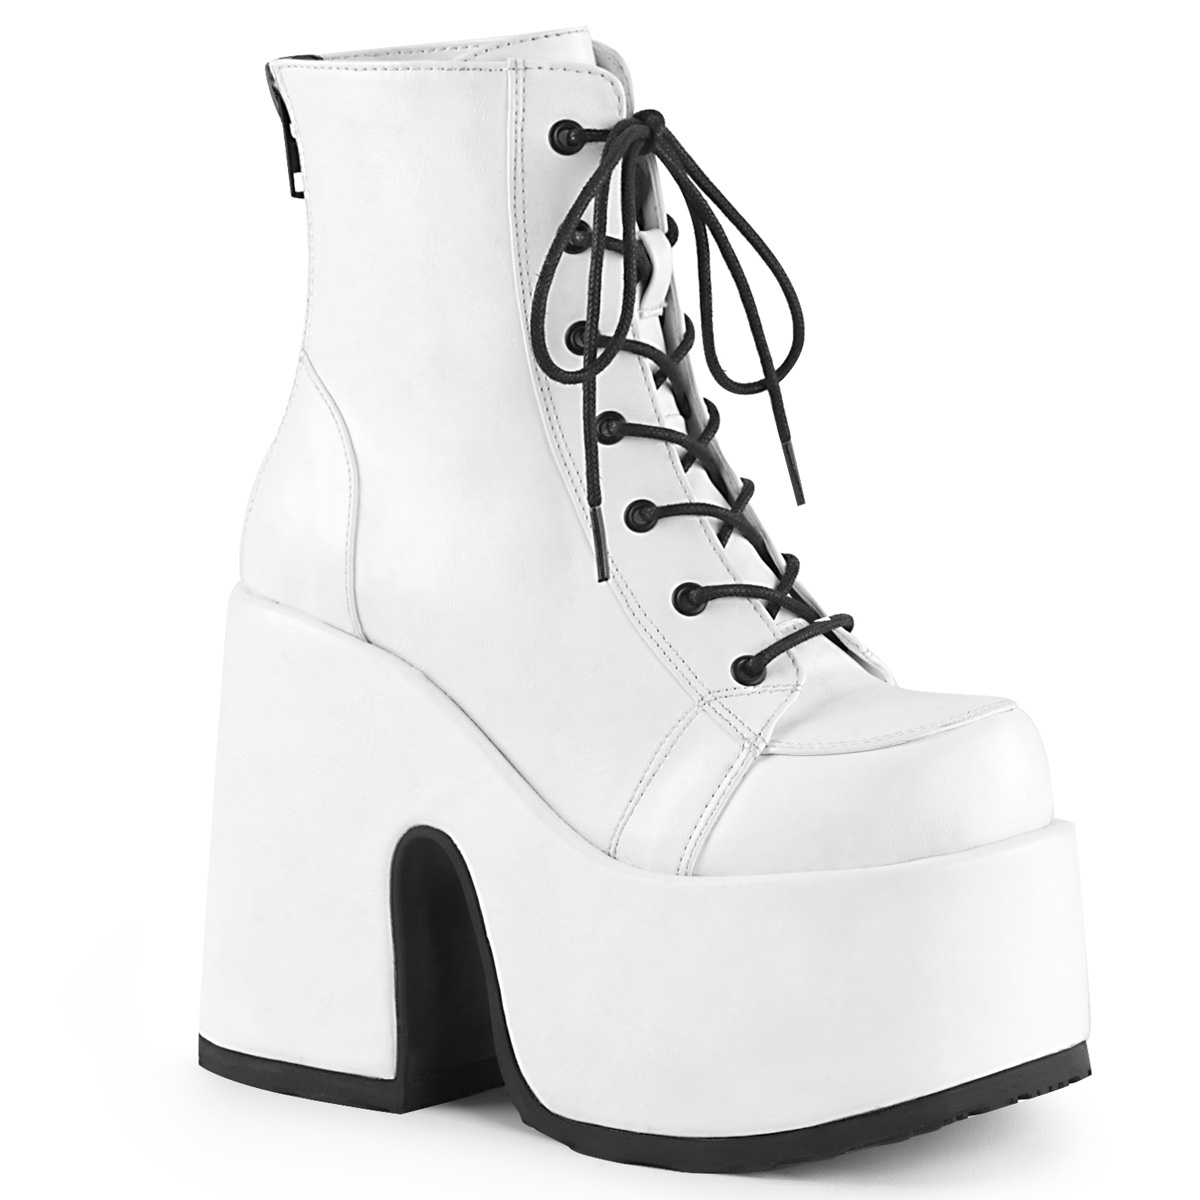 83659421363 Demonia SHOES   BOOTS